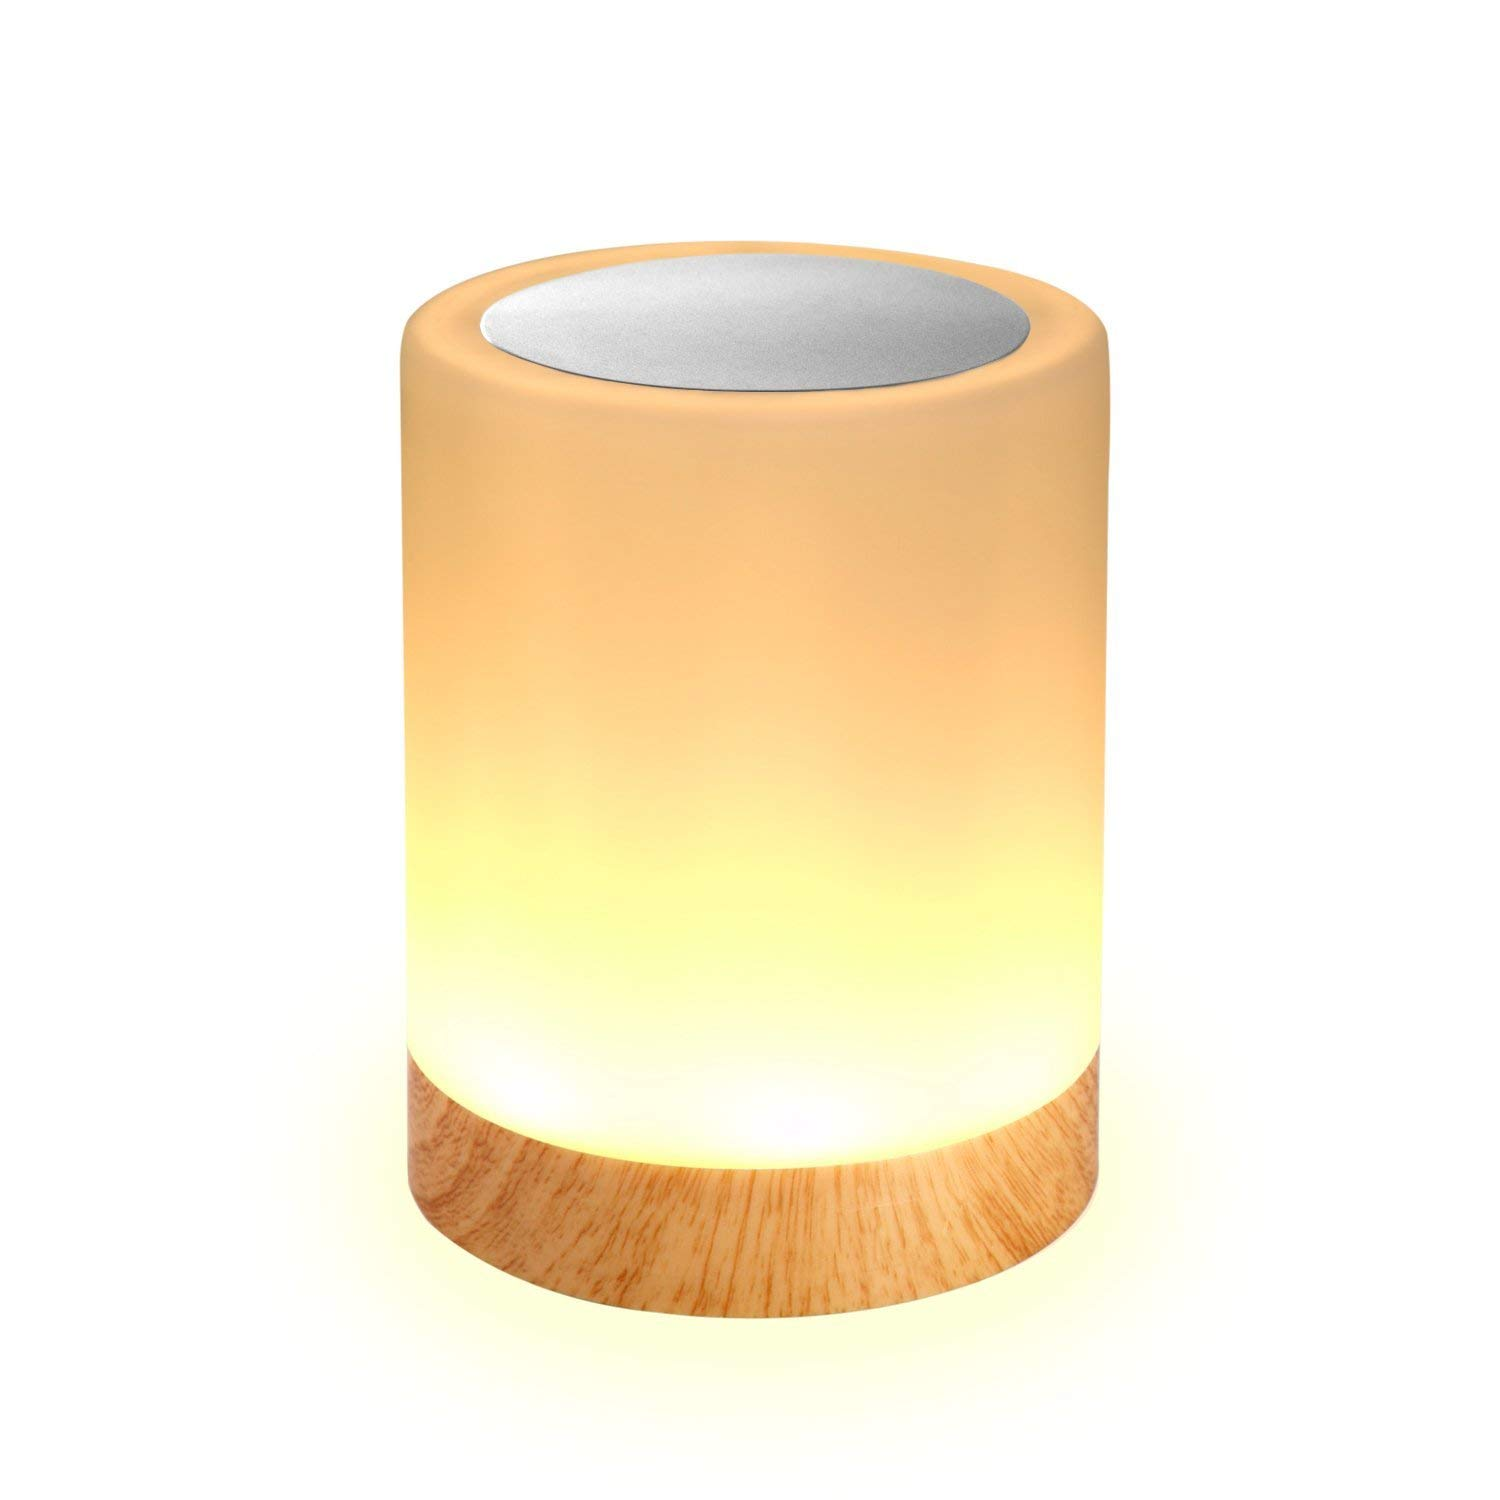 Elecstars Touch Lamp, Portable Night Light + Dimmable Table Bedside Lamps & Color Changing RGB for Bedrooms